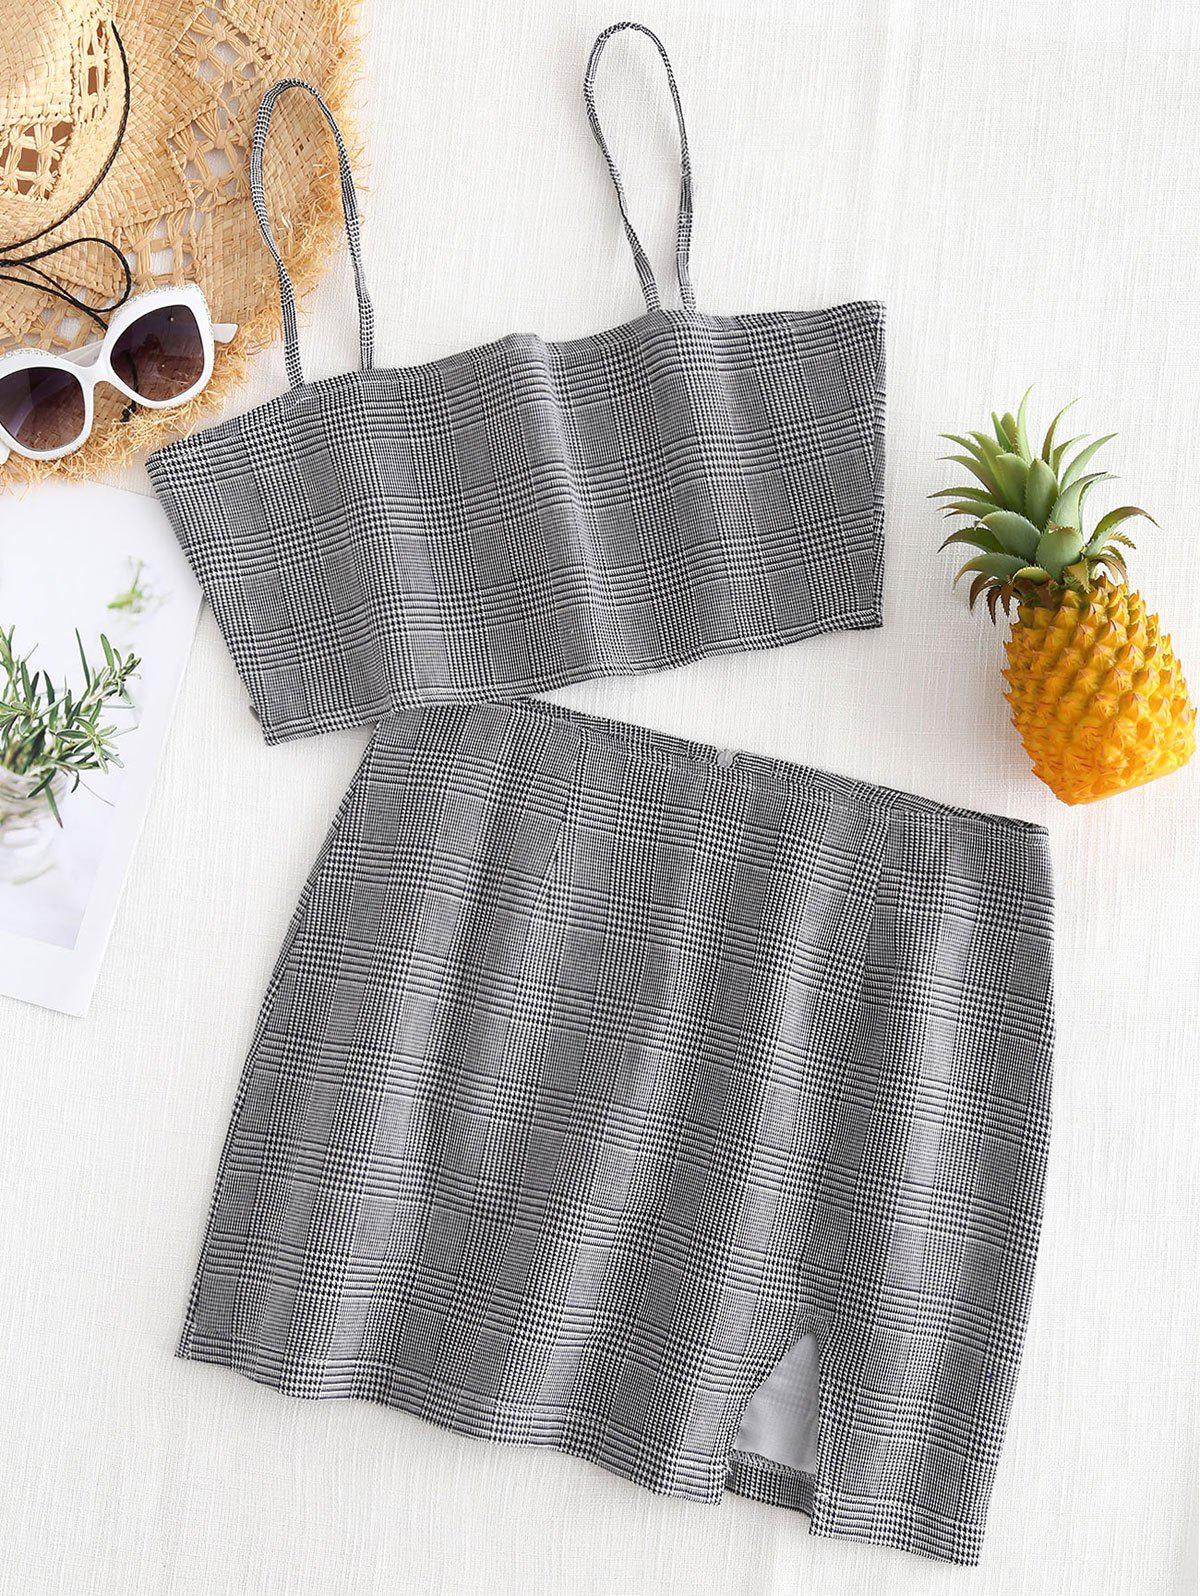 Bralette Plaid Top and